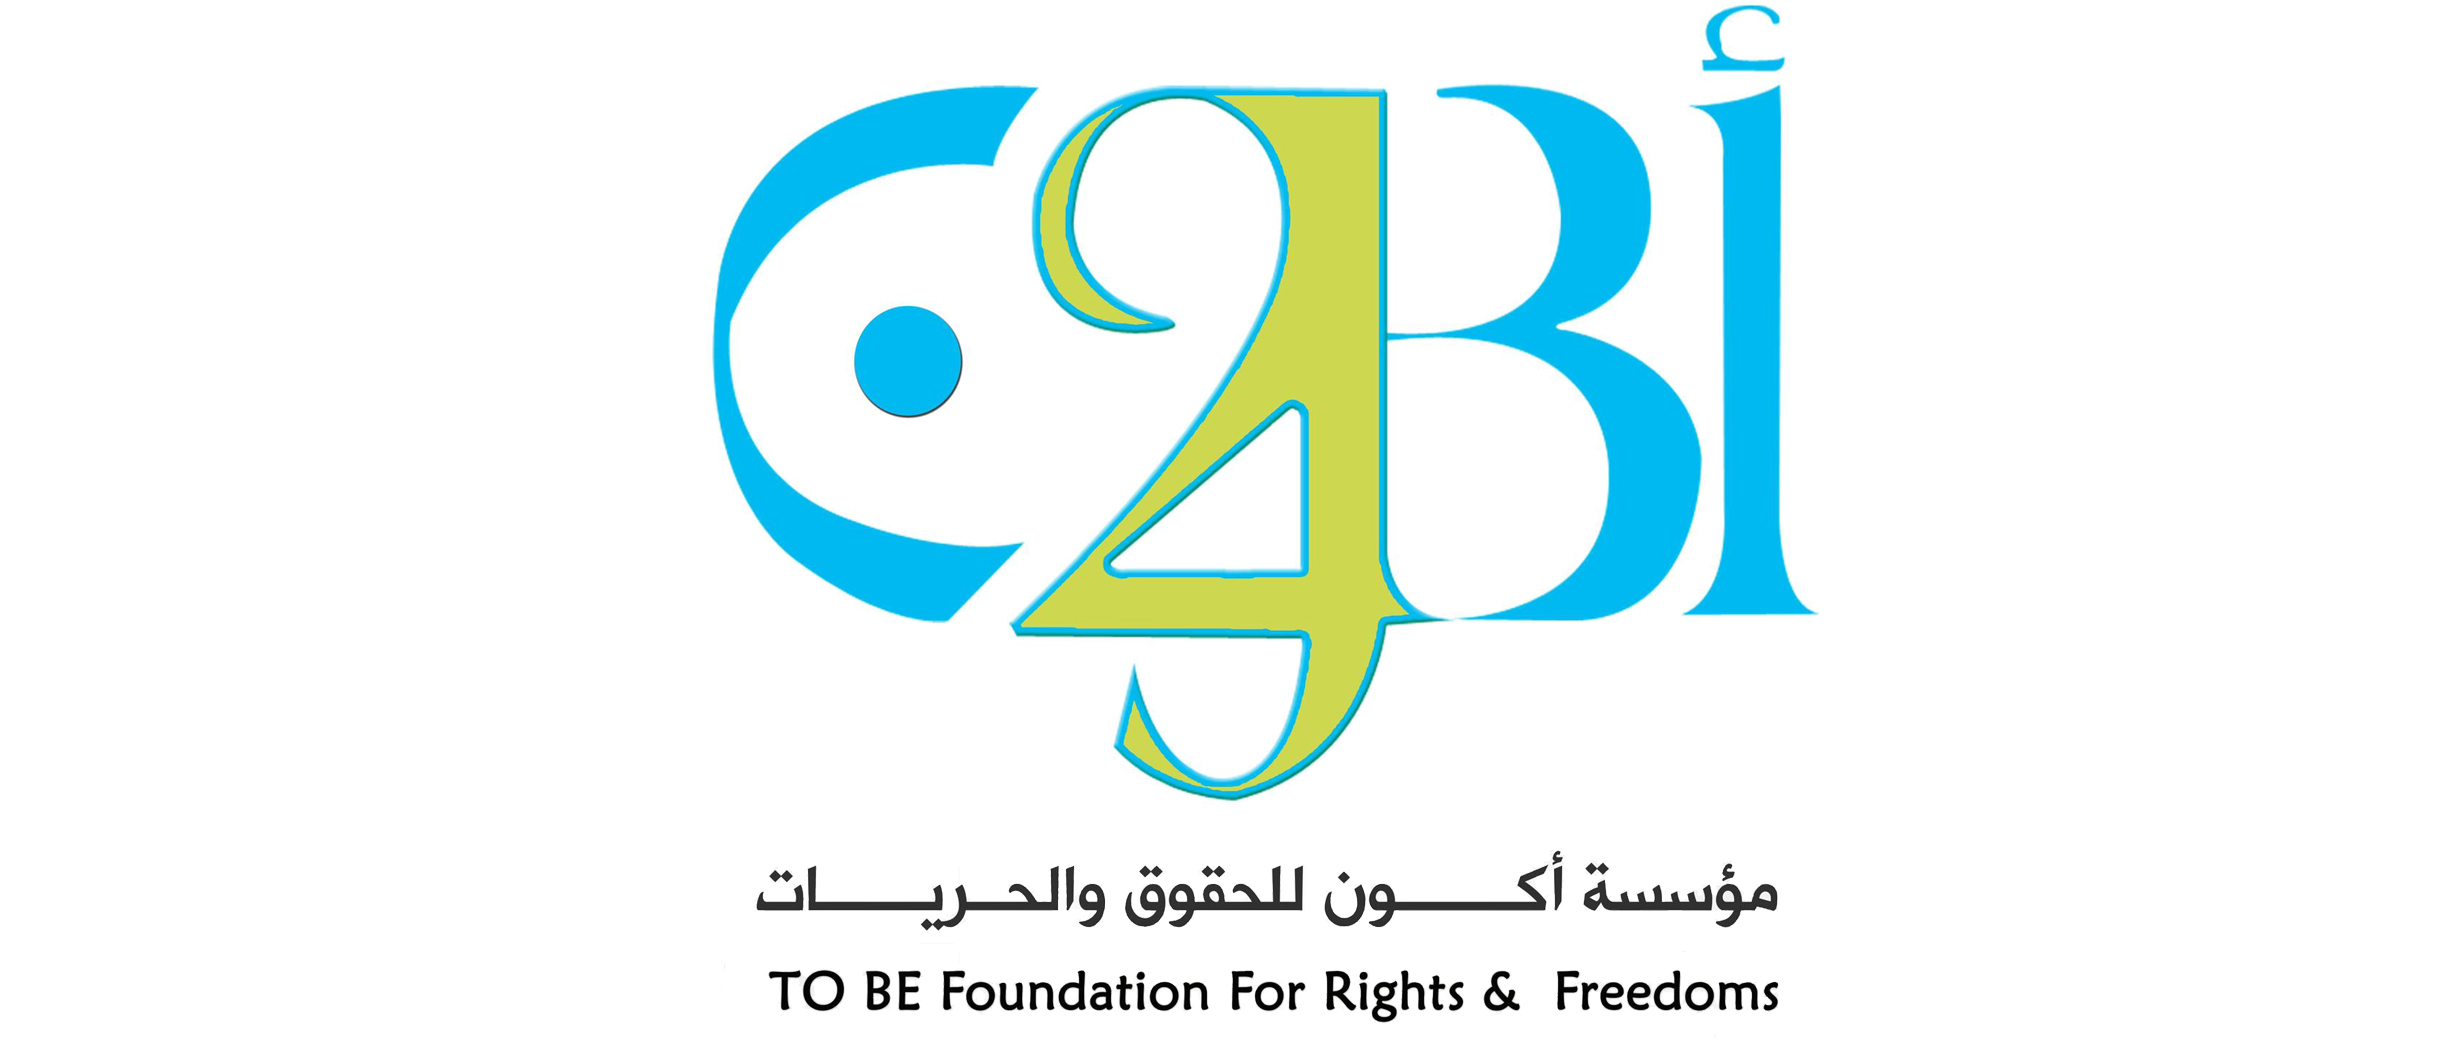 To Be Foundation for Rights & Freedoms